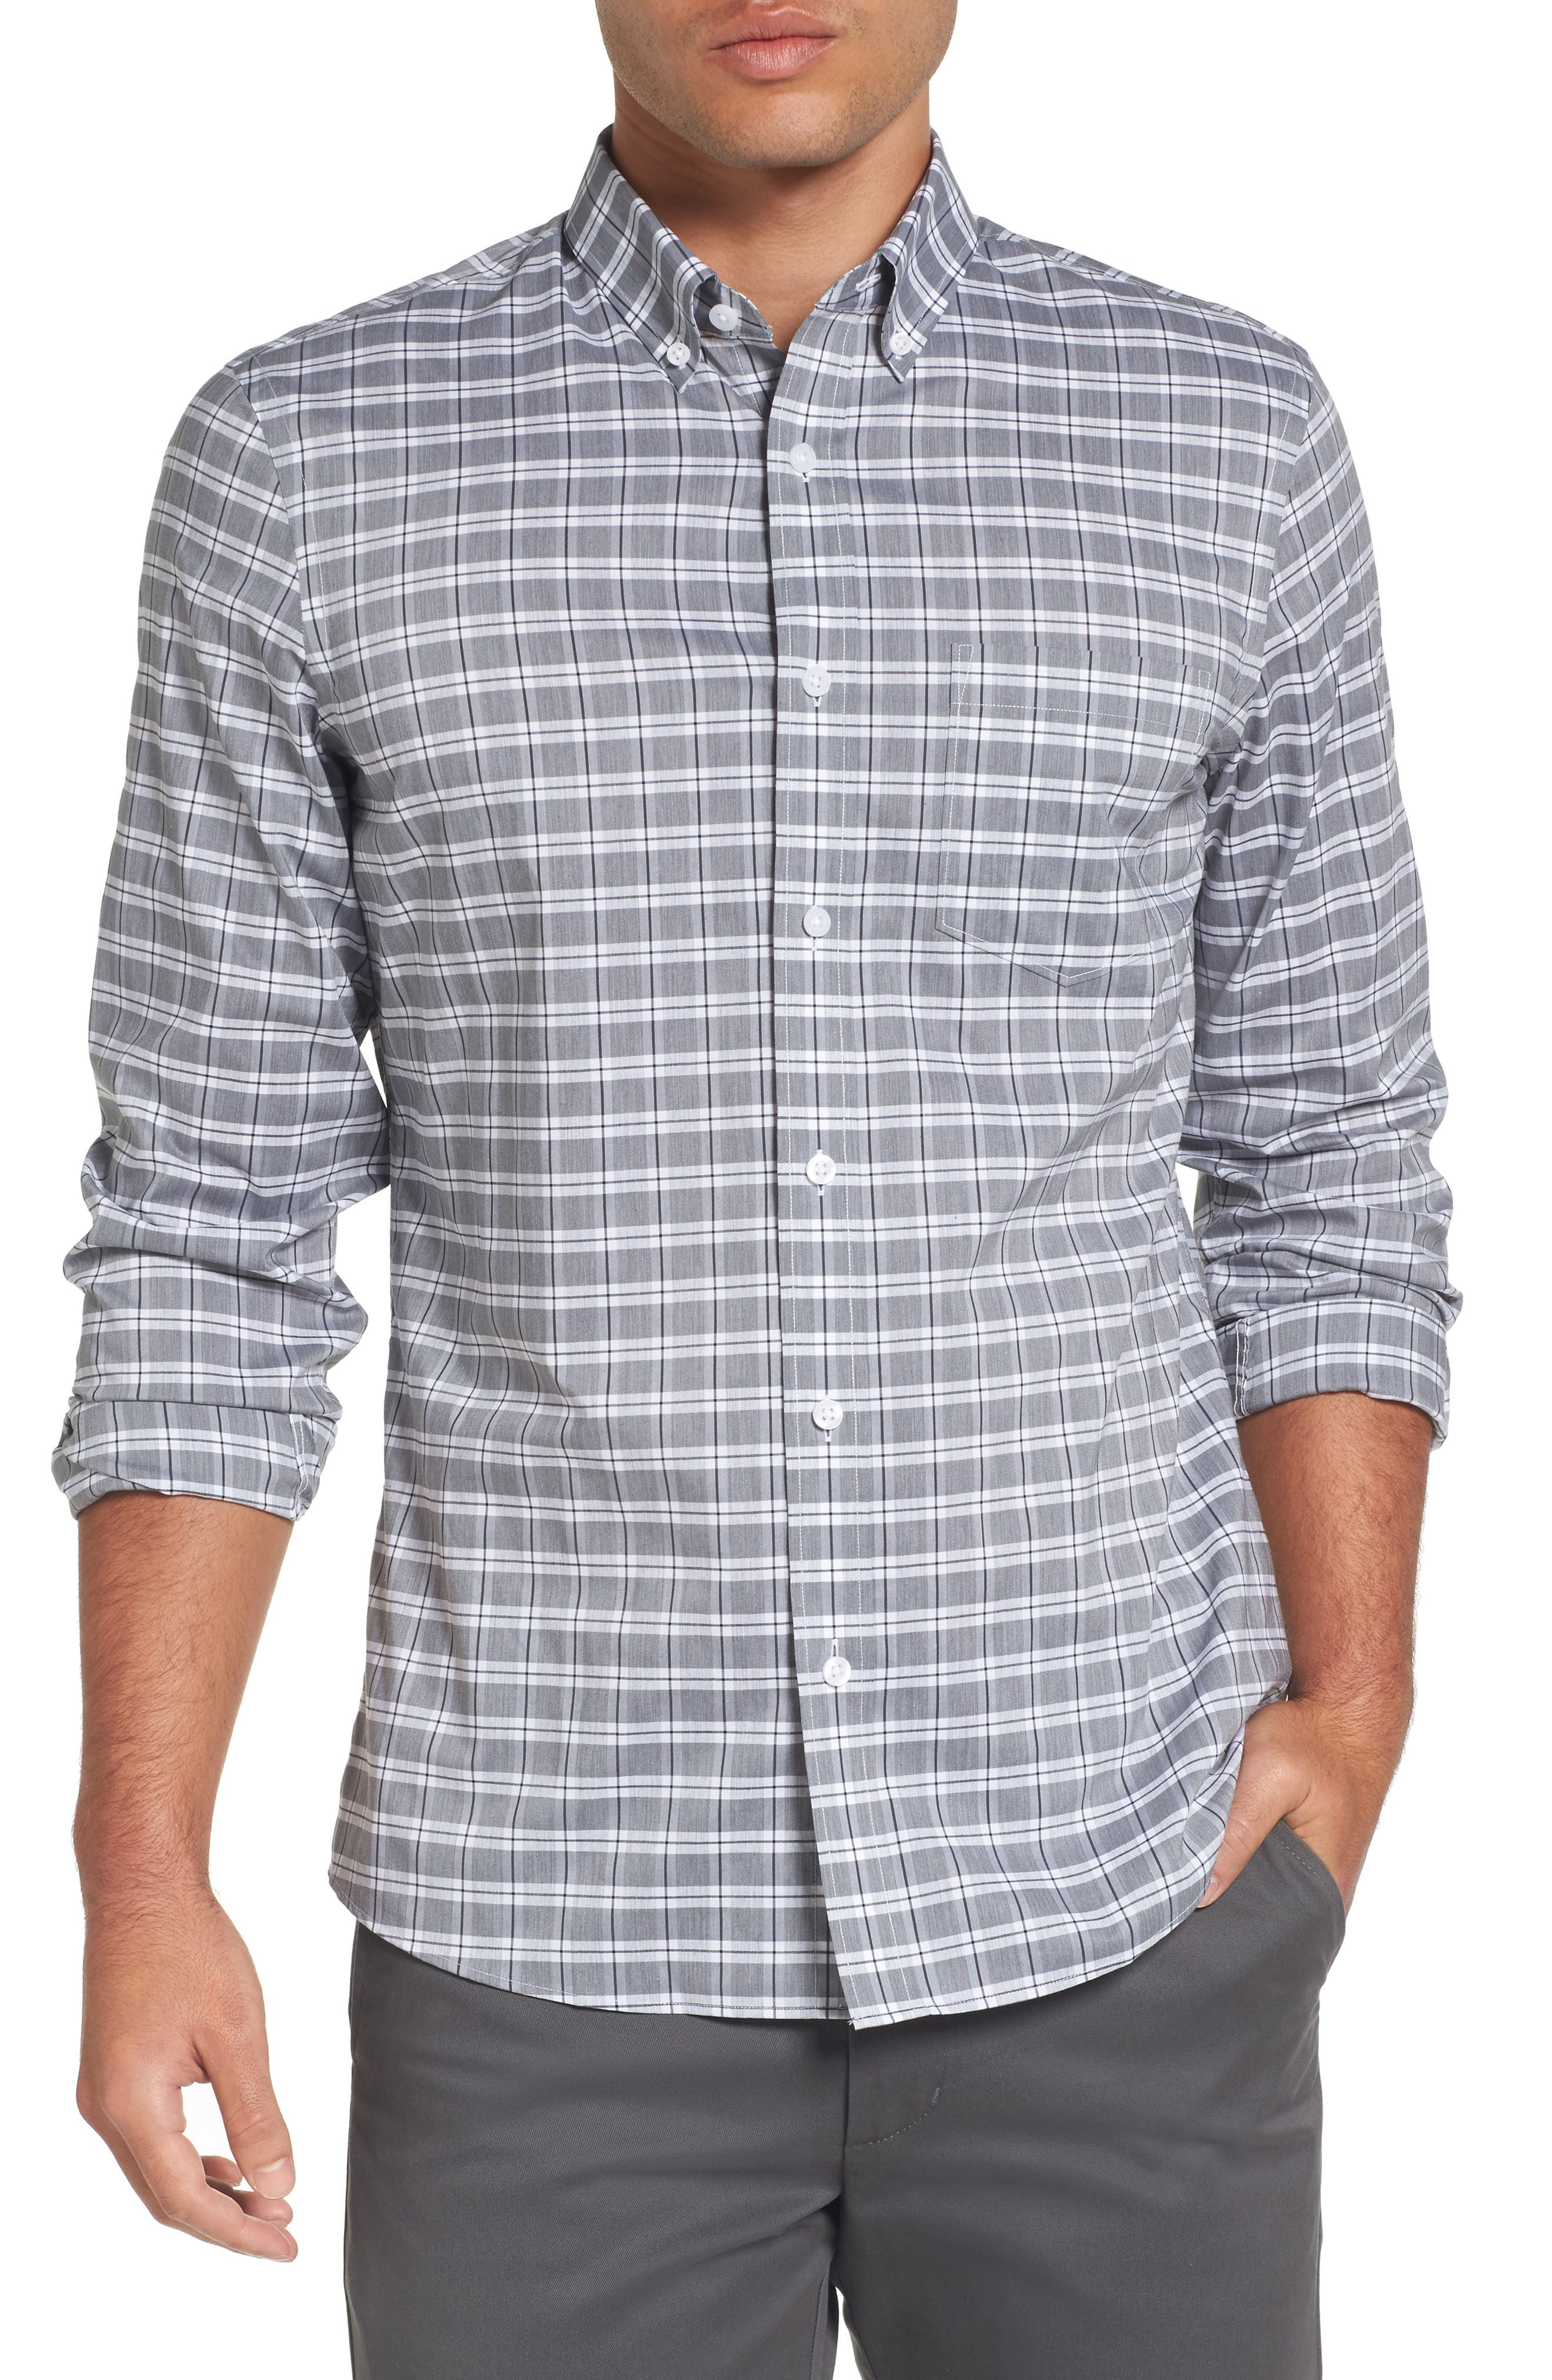 NORDSTROM MENS SHOP Smartcare<sup>™</sup> Trim Fit Heather Check Sport Shirt